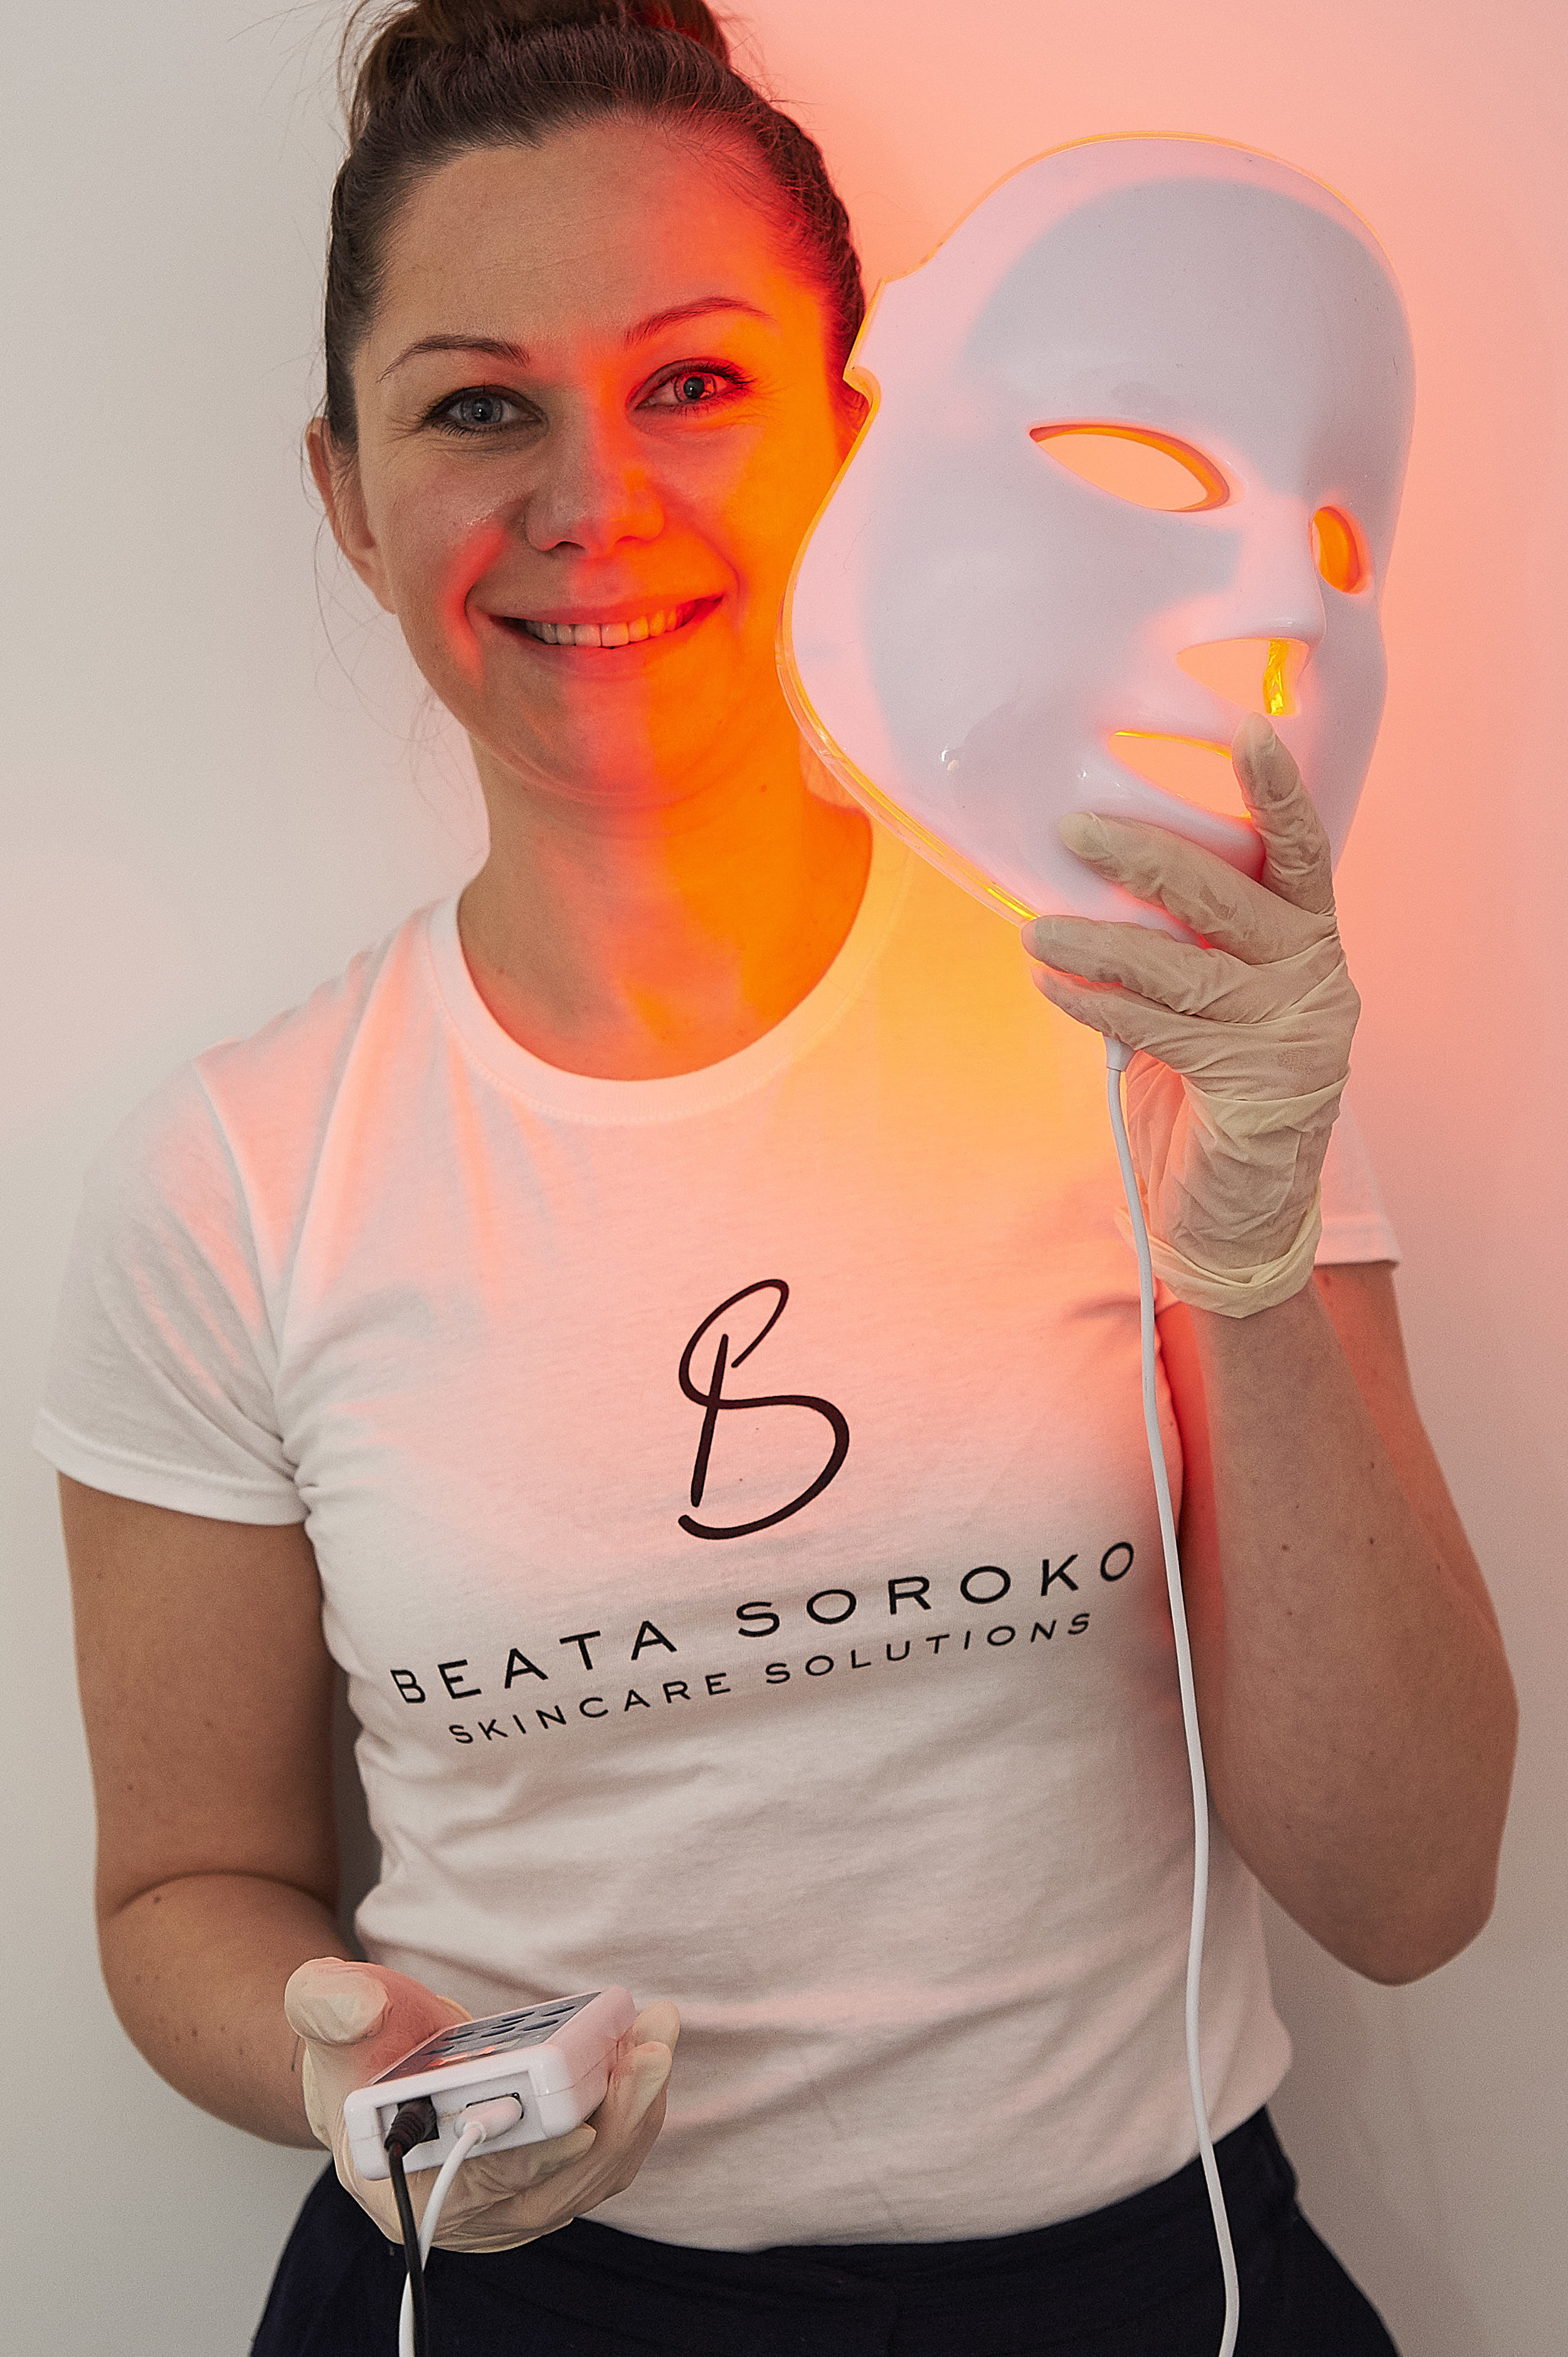 Deep exfoliation with LED Light Therapy £60 - It's about time you got rid of those hideous dead skin cells with  gentle exfoliation. Unclog your pores, boost circulation and make your skin look healthy, fresh and luminous by adding Celebrities favourite LED Light Therapy Treatment!